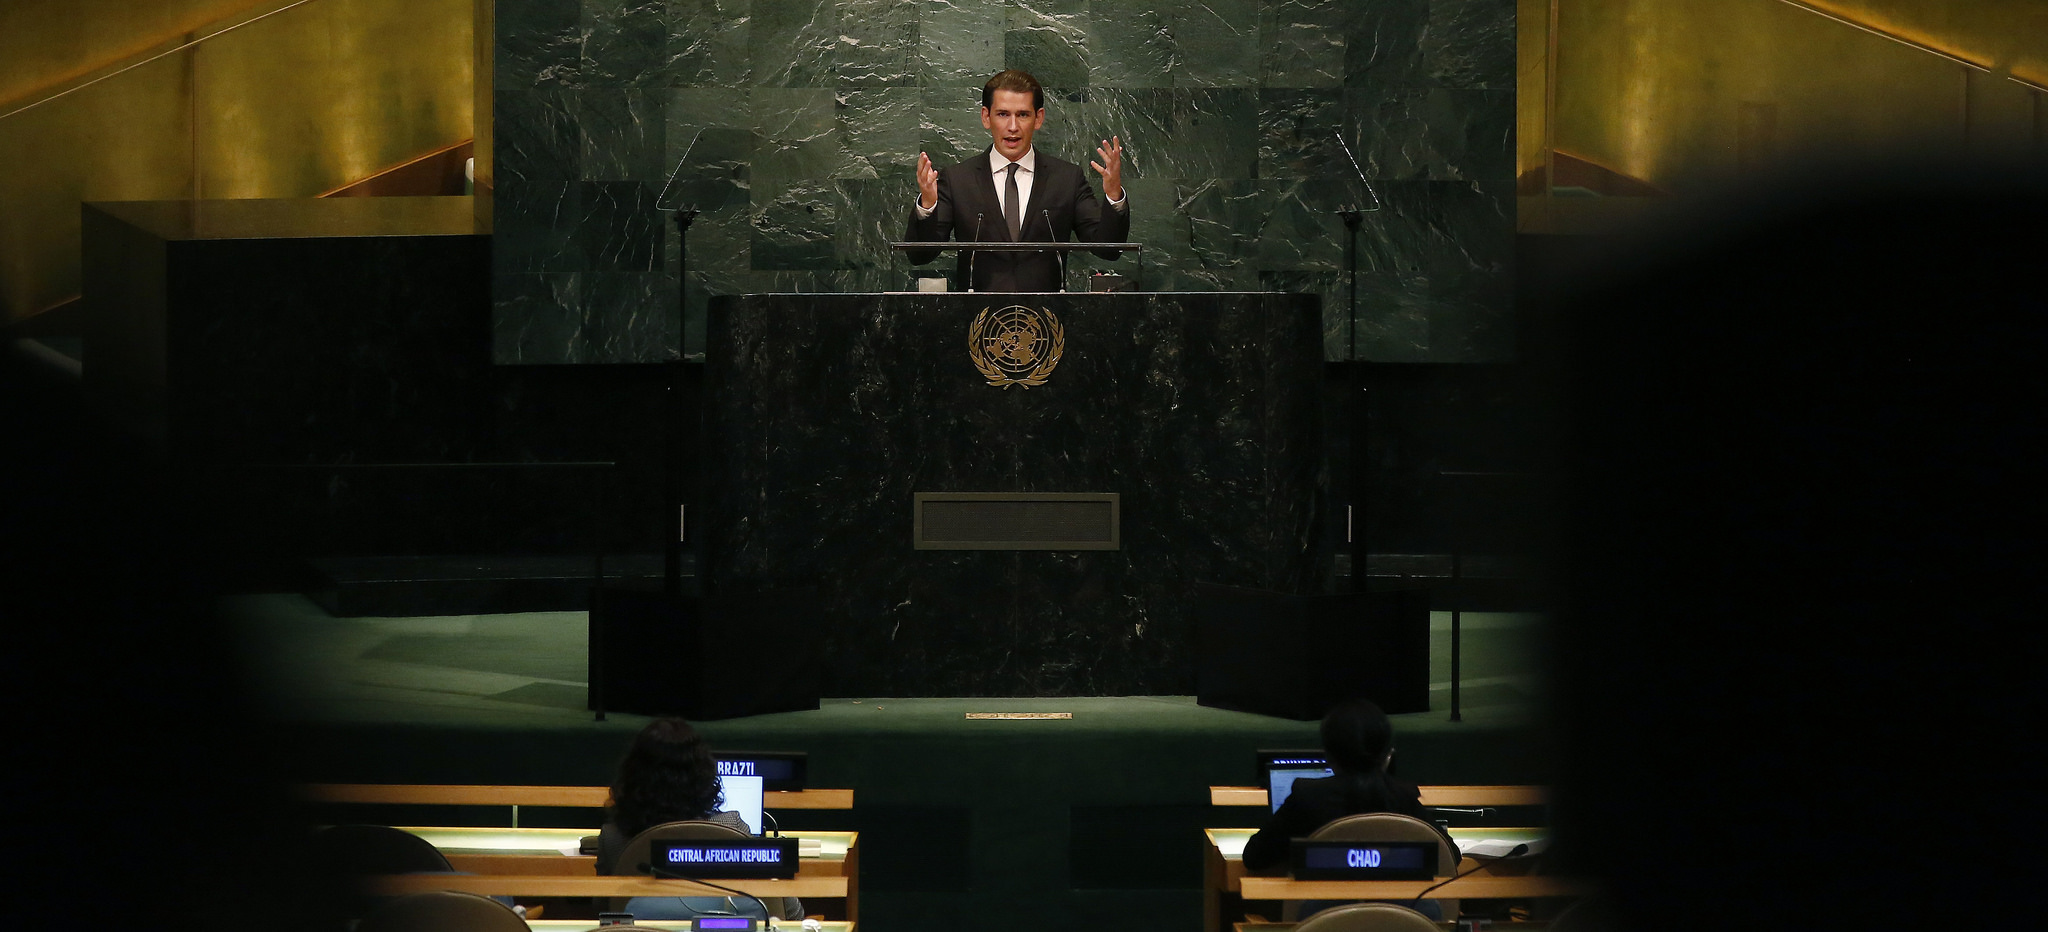 FM Kurz speaking at the UNGA. Photo: Dragen Tatic